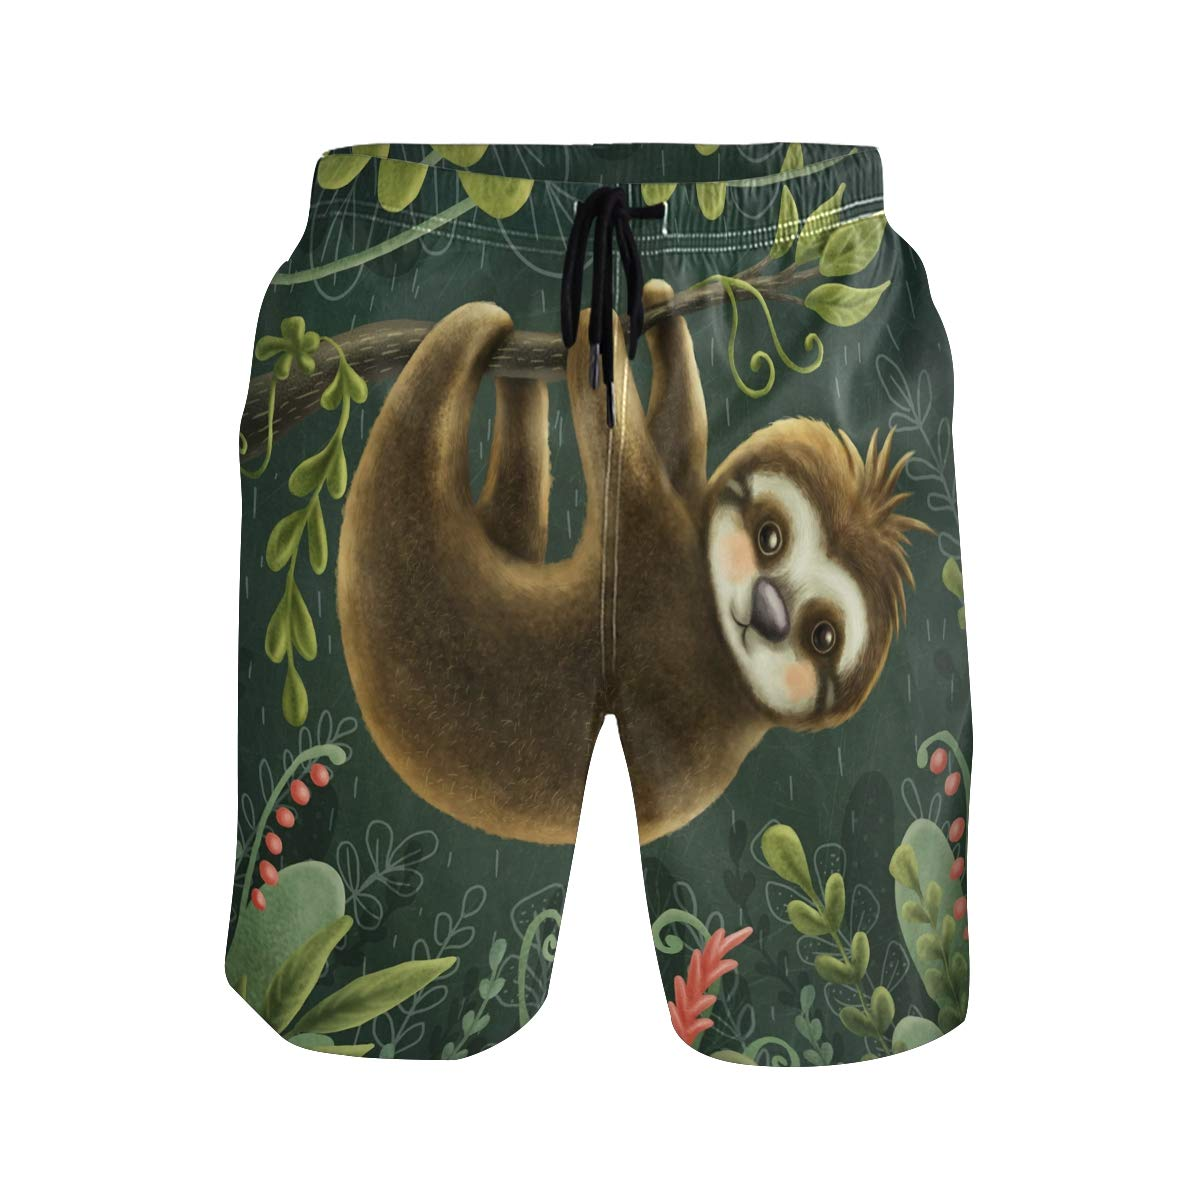 KUWT Mens Swim Trunks Tropical Plant Sloth Quick Dry Beach Shorts Summer Surf Board Shorts